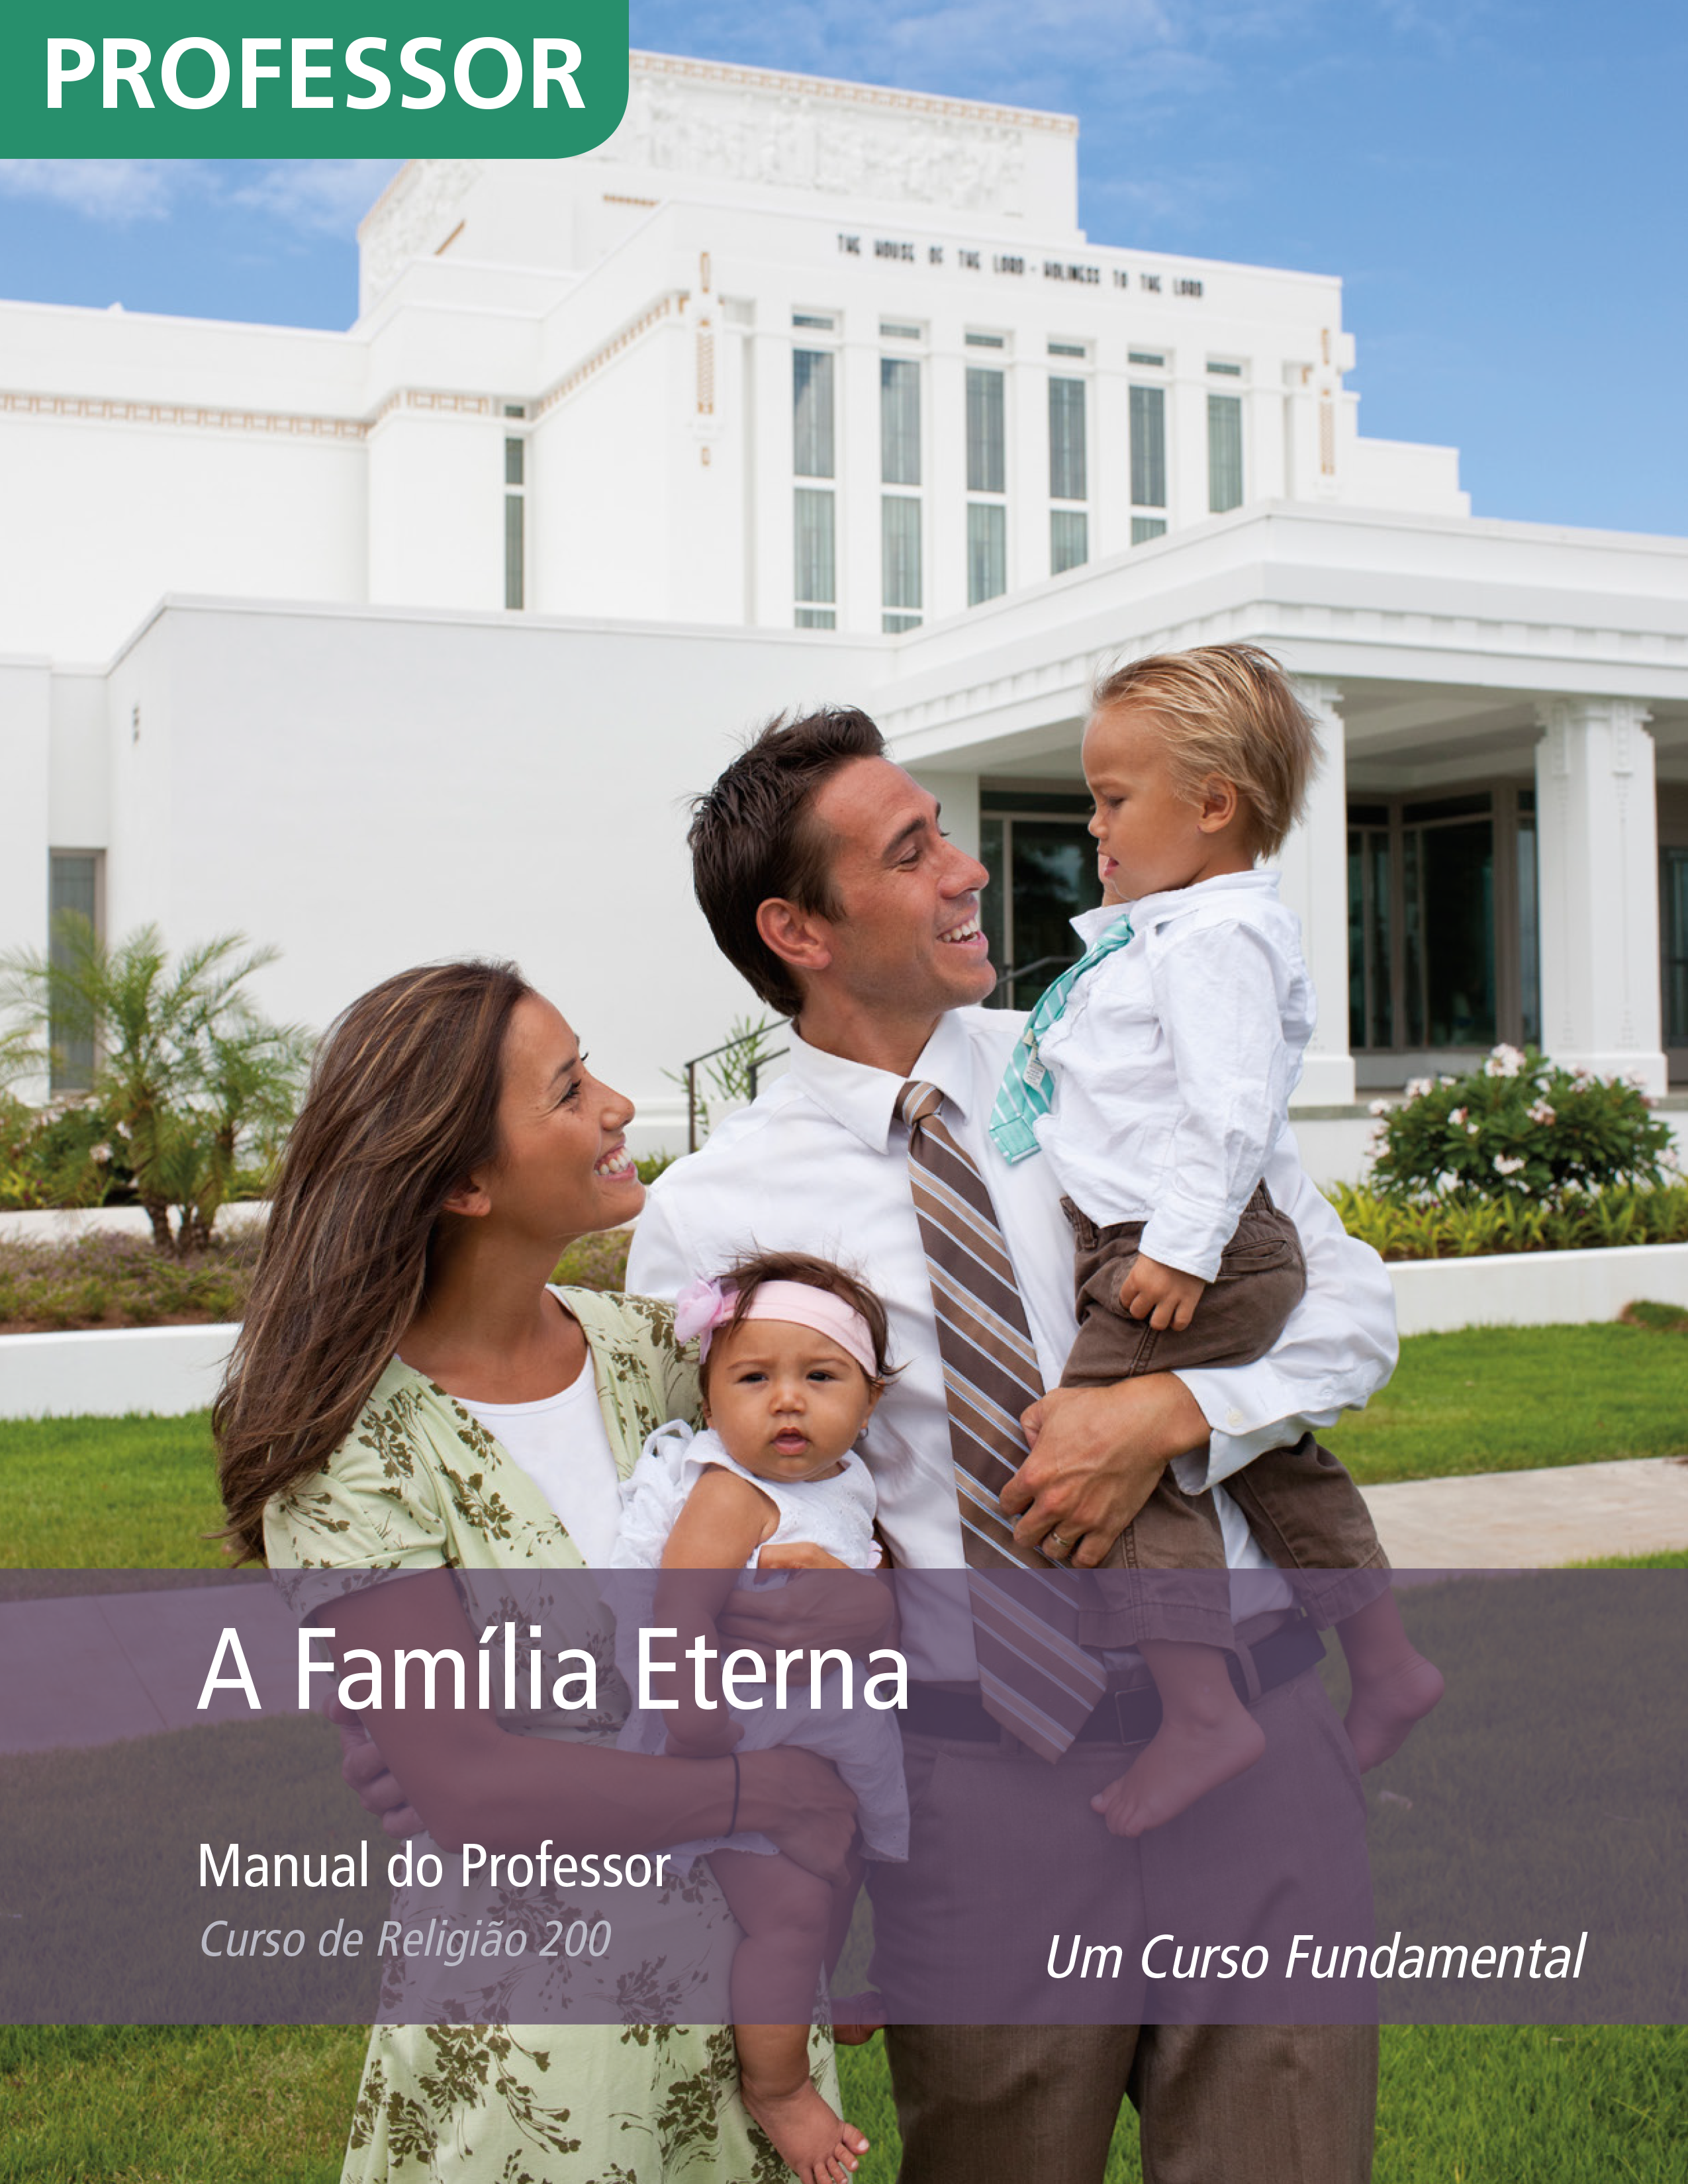 A Família Eterna — Manual do Professor